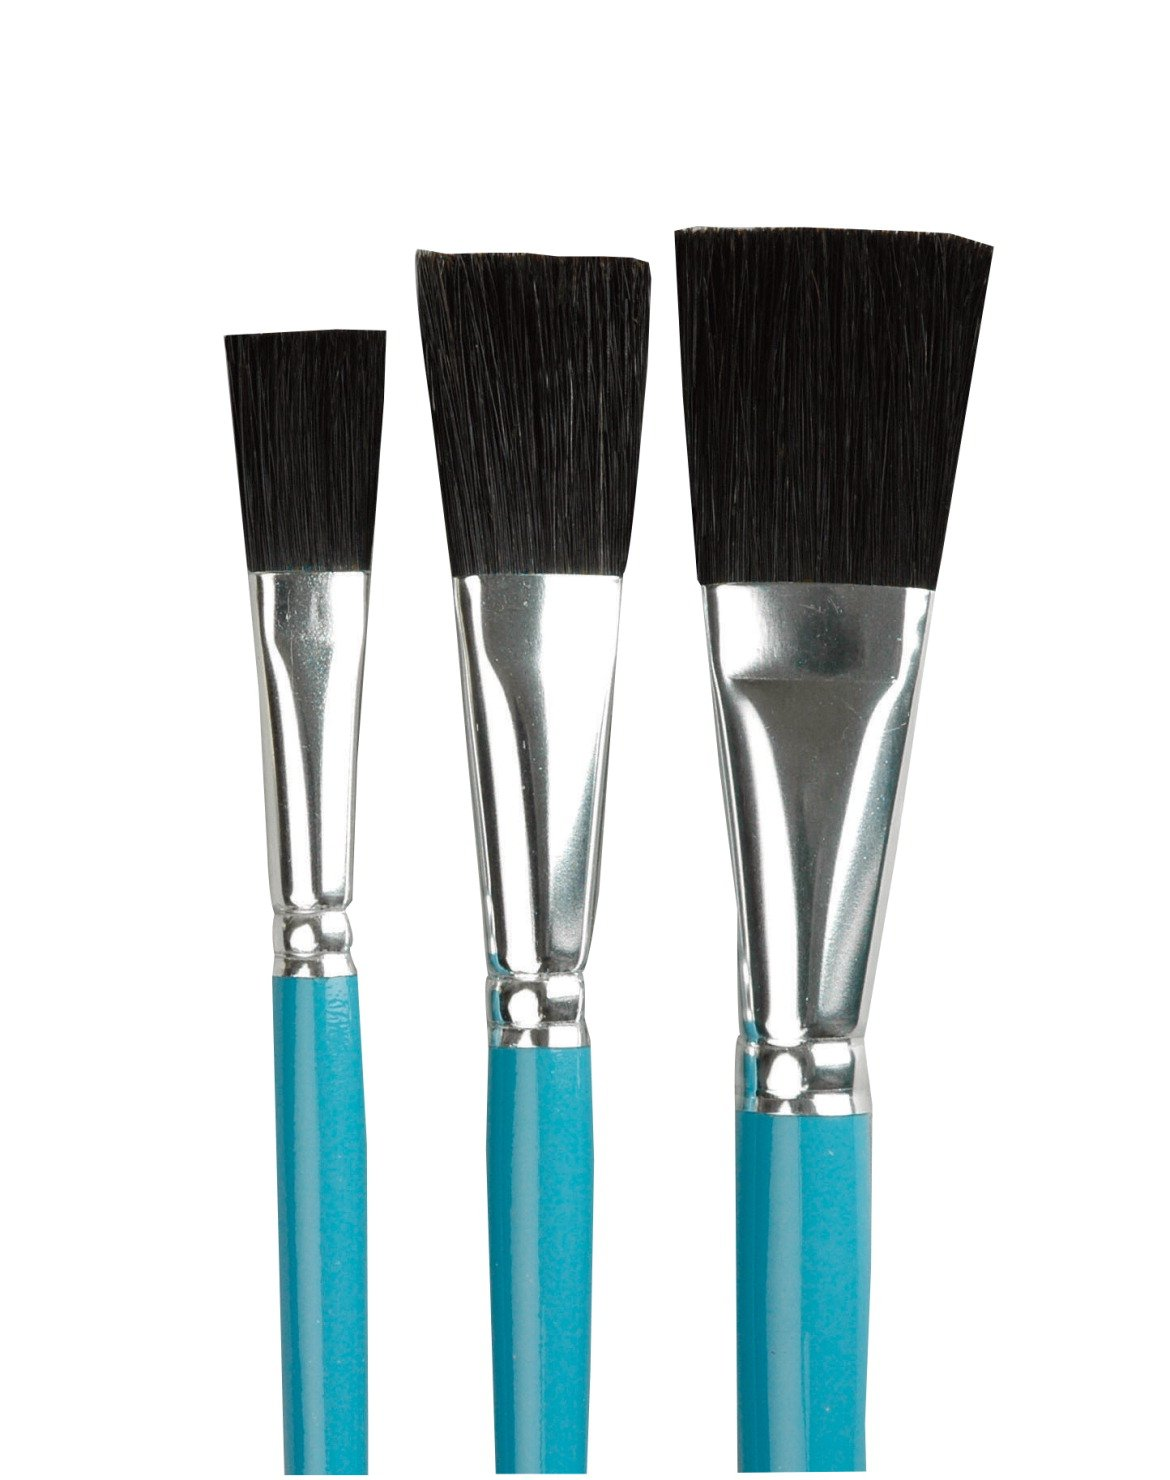 Sax True Flow Black China Bristle Brush includes 1 each of 1/2'', 3/4'', and 1'' Size Brush (Set of 3)